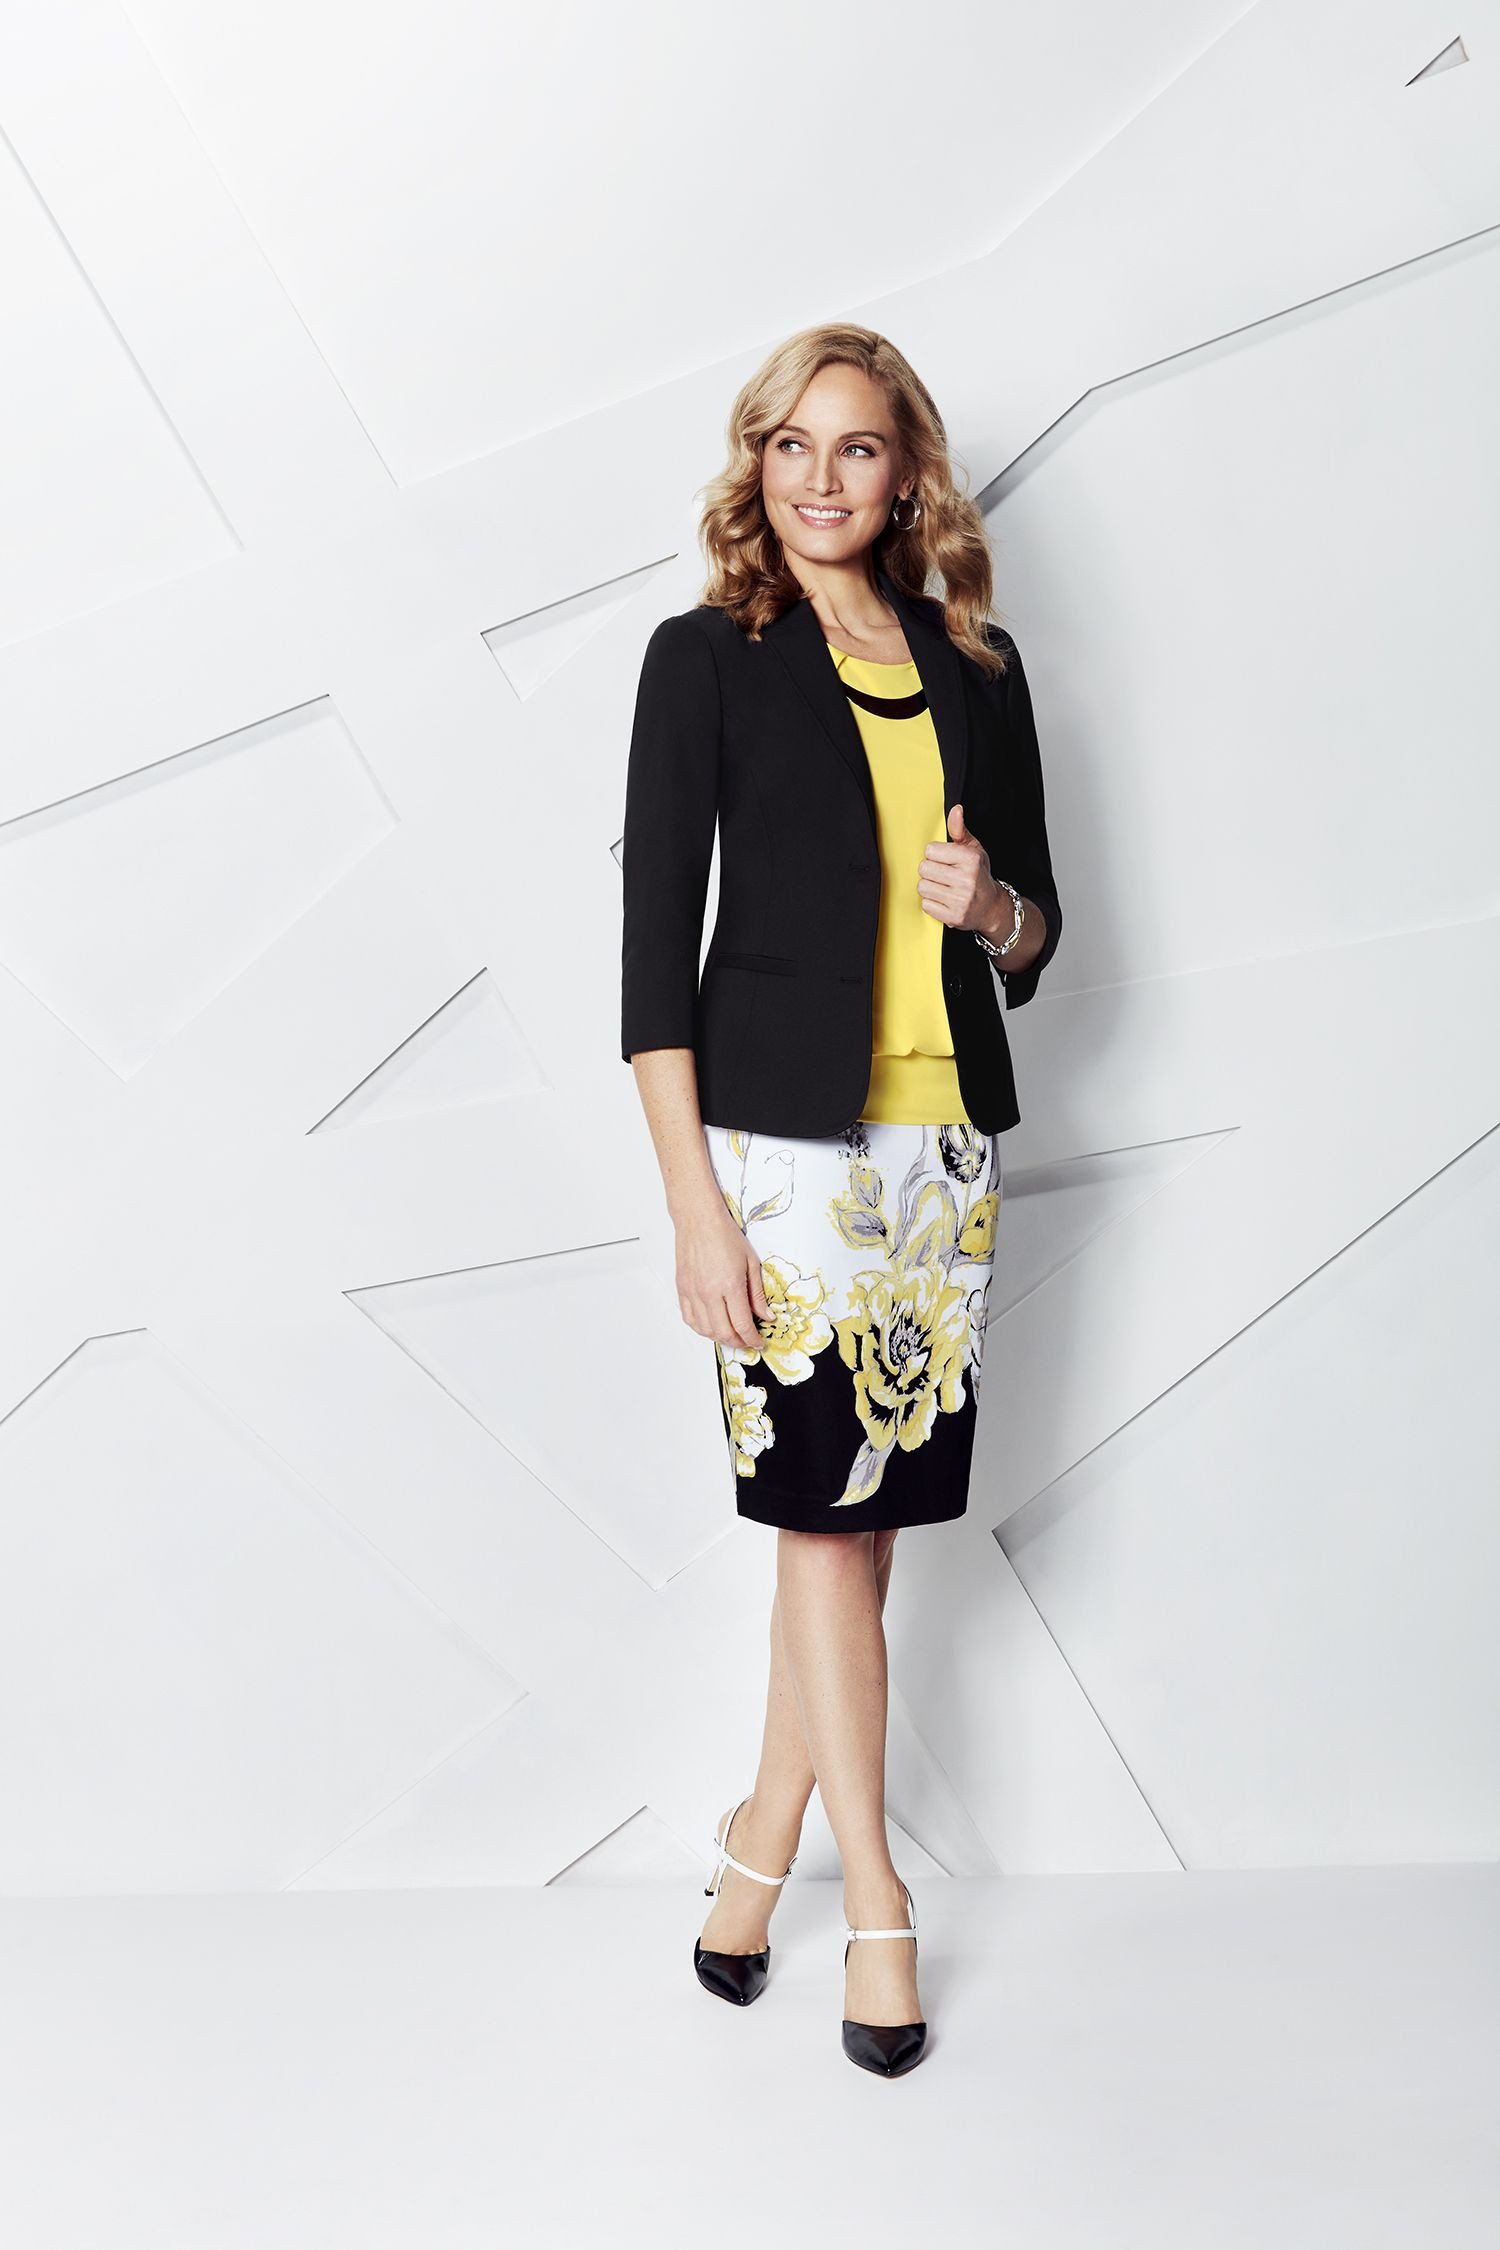 Yellow and black lookbook dress with pencil skirt, formal wear, shorts